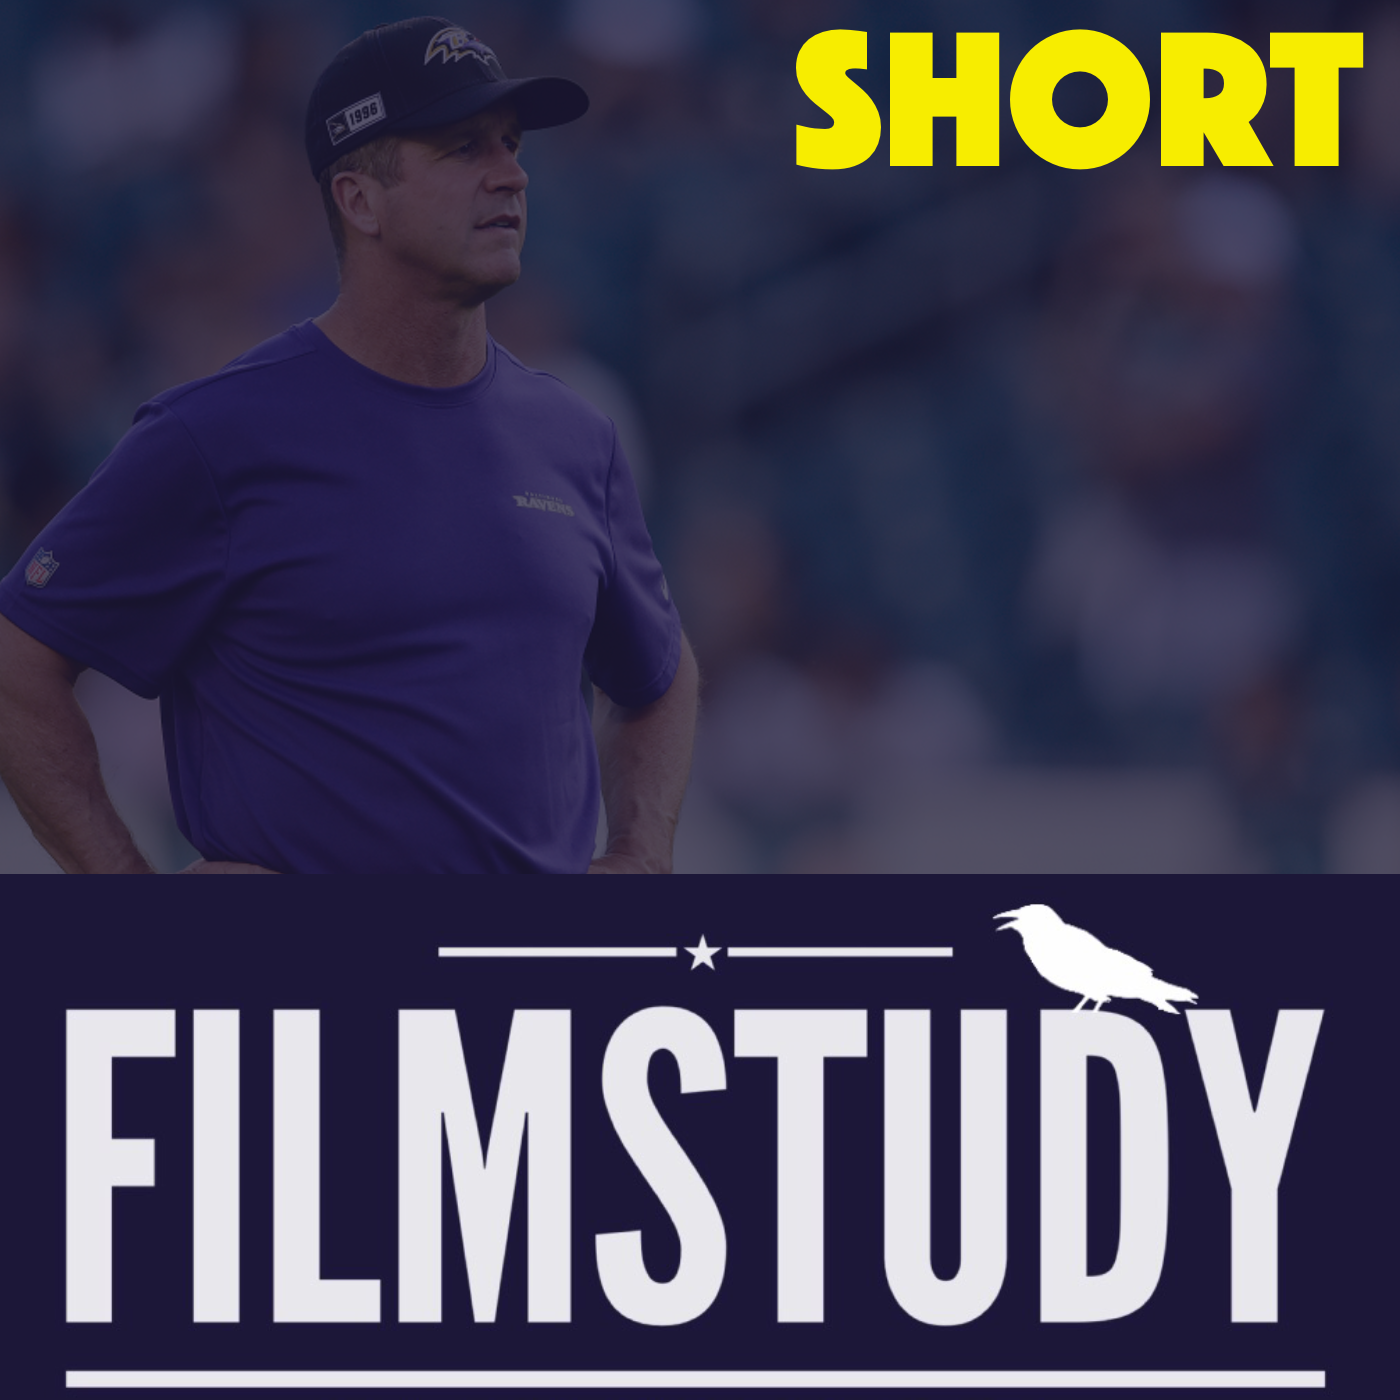 Filmstudy Short : Coach of the Year